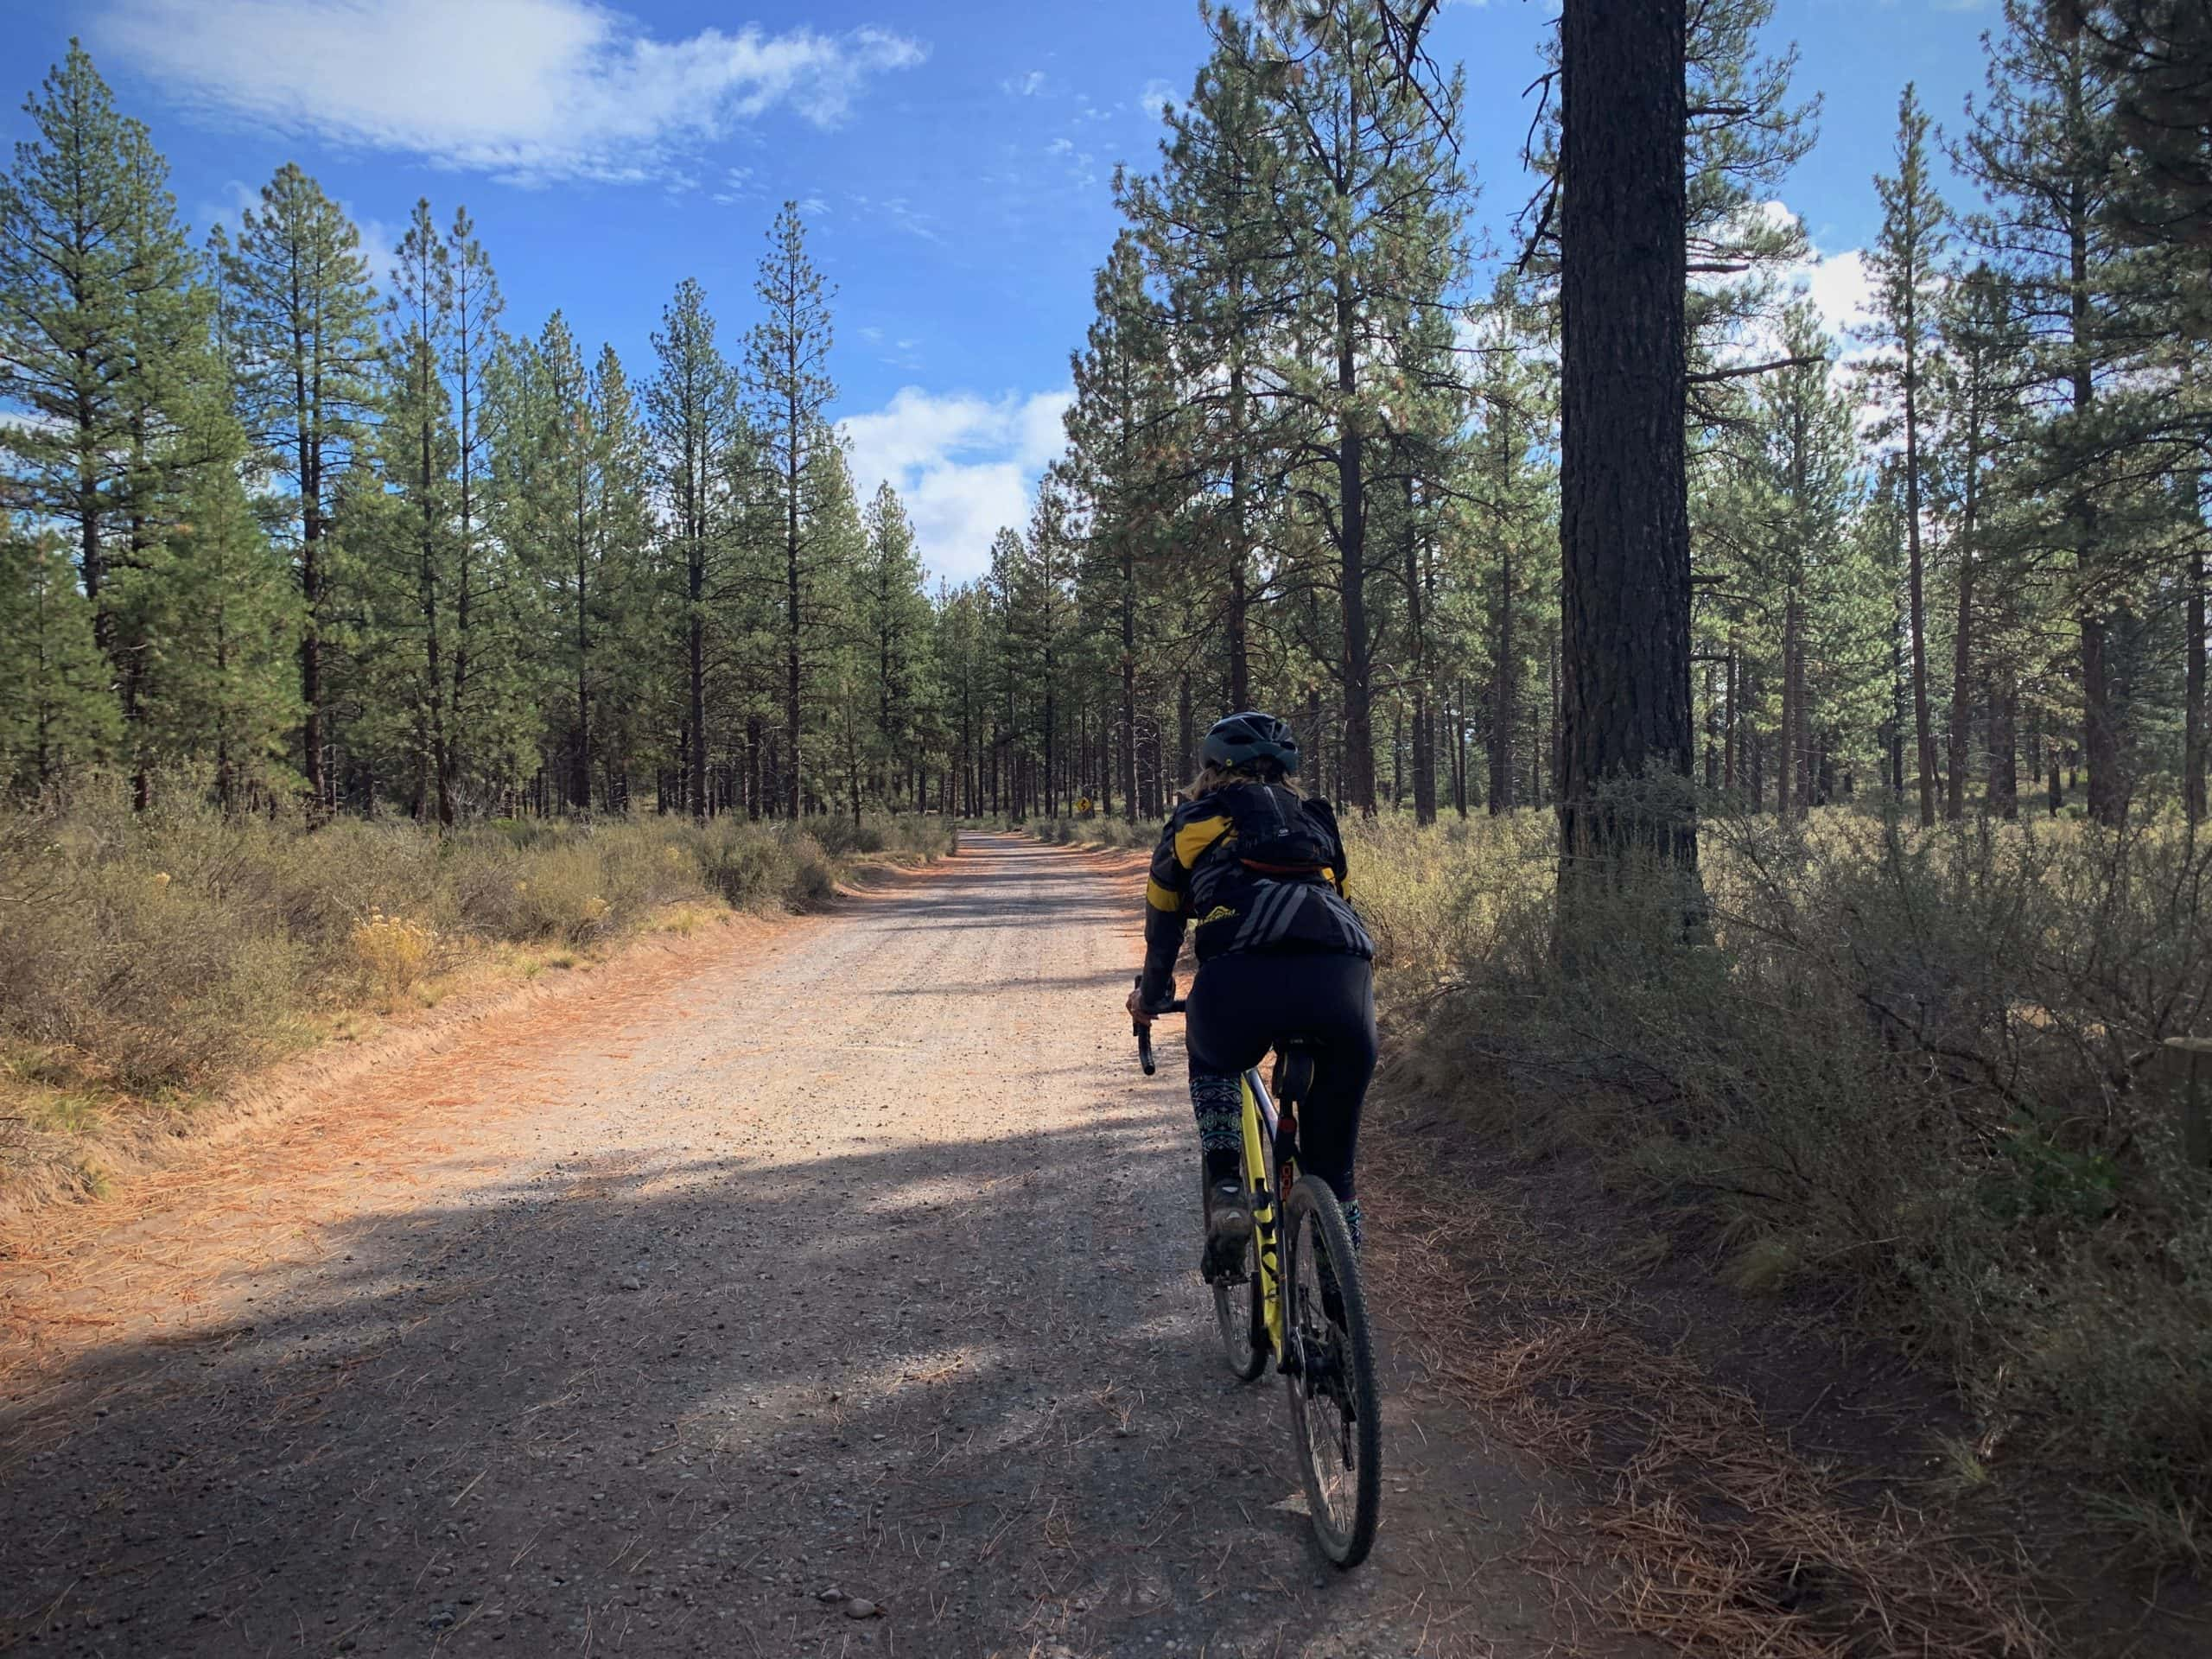 Gravel cyclist on gravel road leading to Lava Island Day Use area on the Deschutes River.